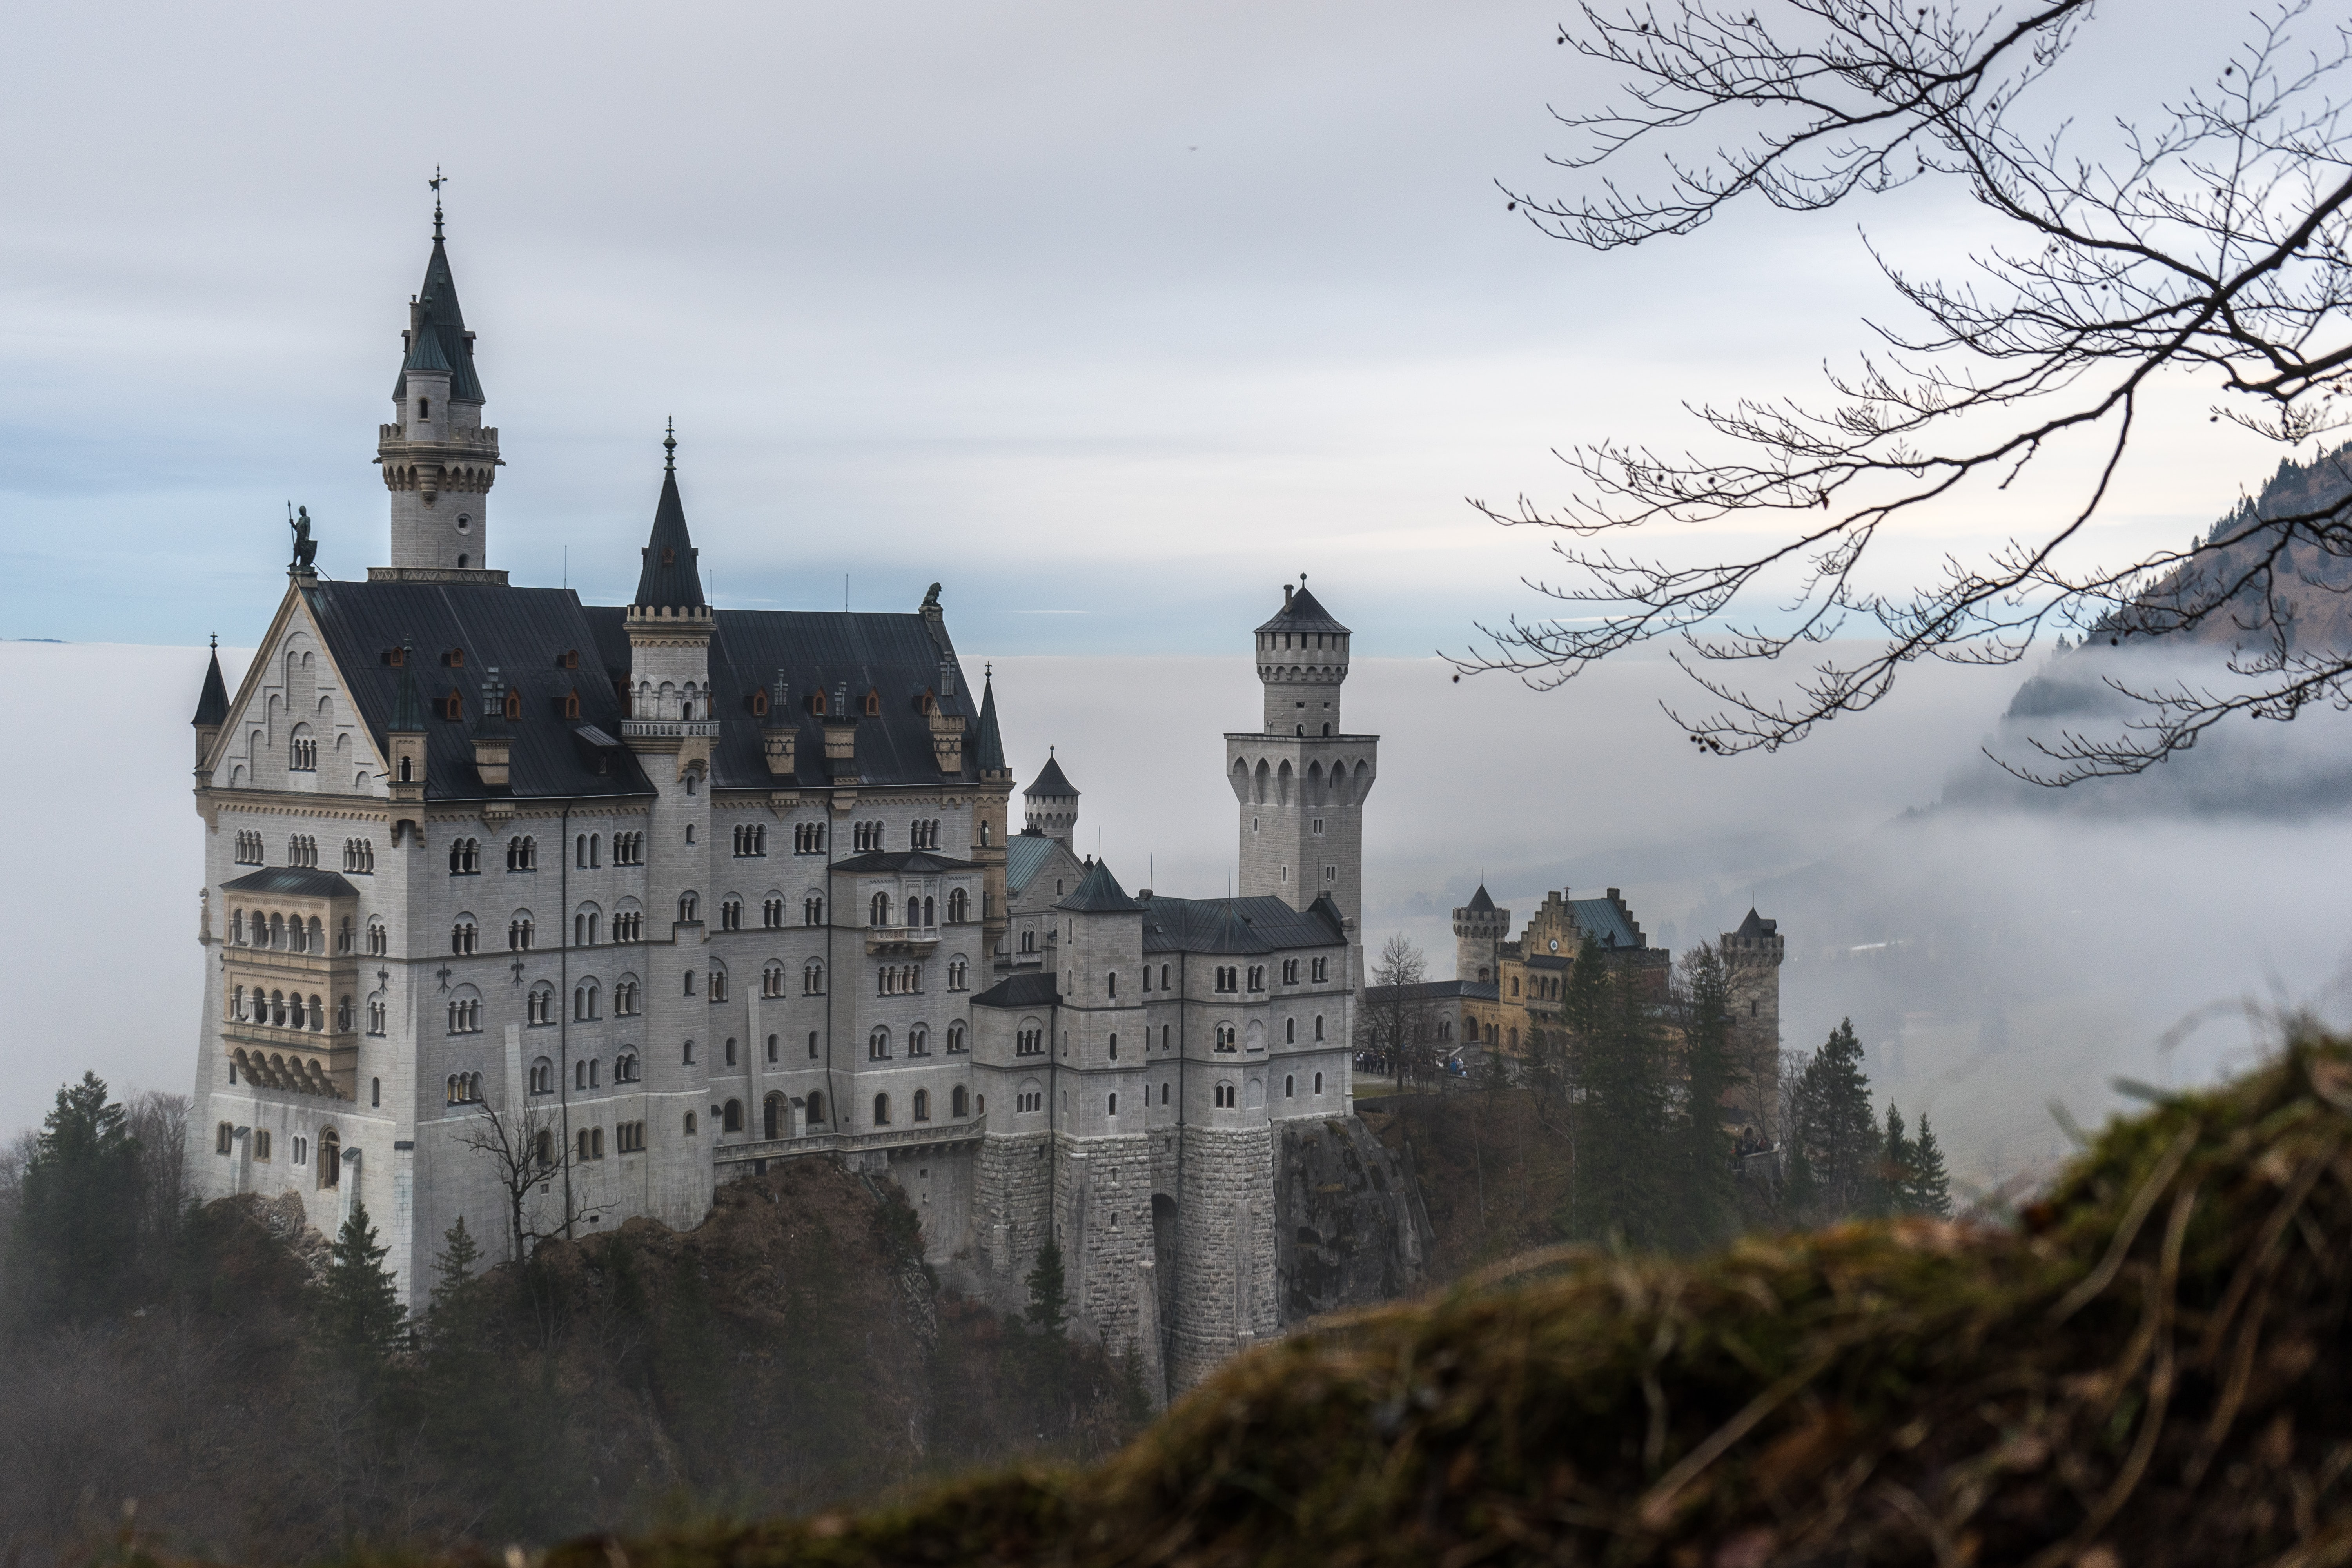 Orante Neuschwanstein Castle surrounded by fog and woods